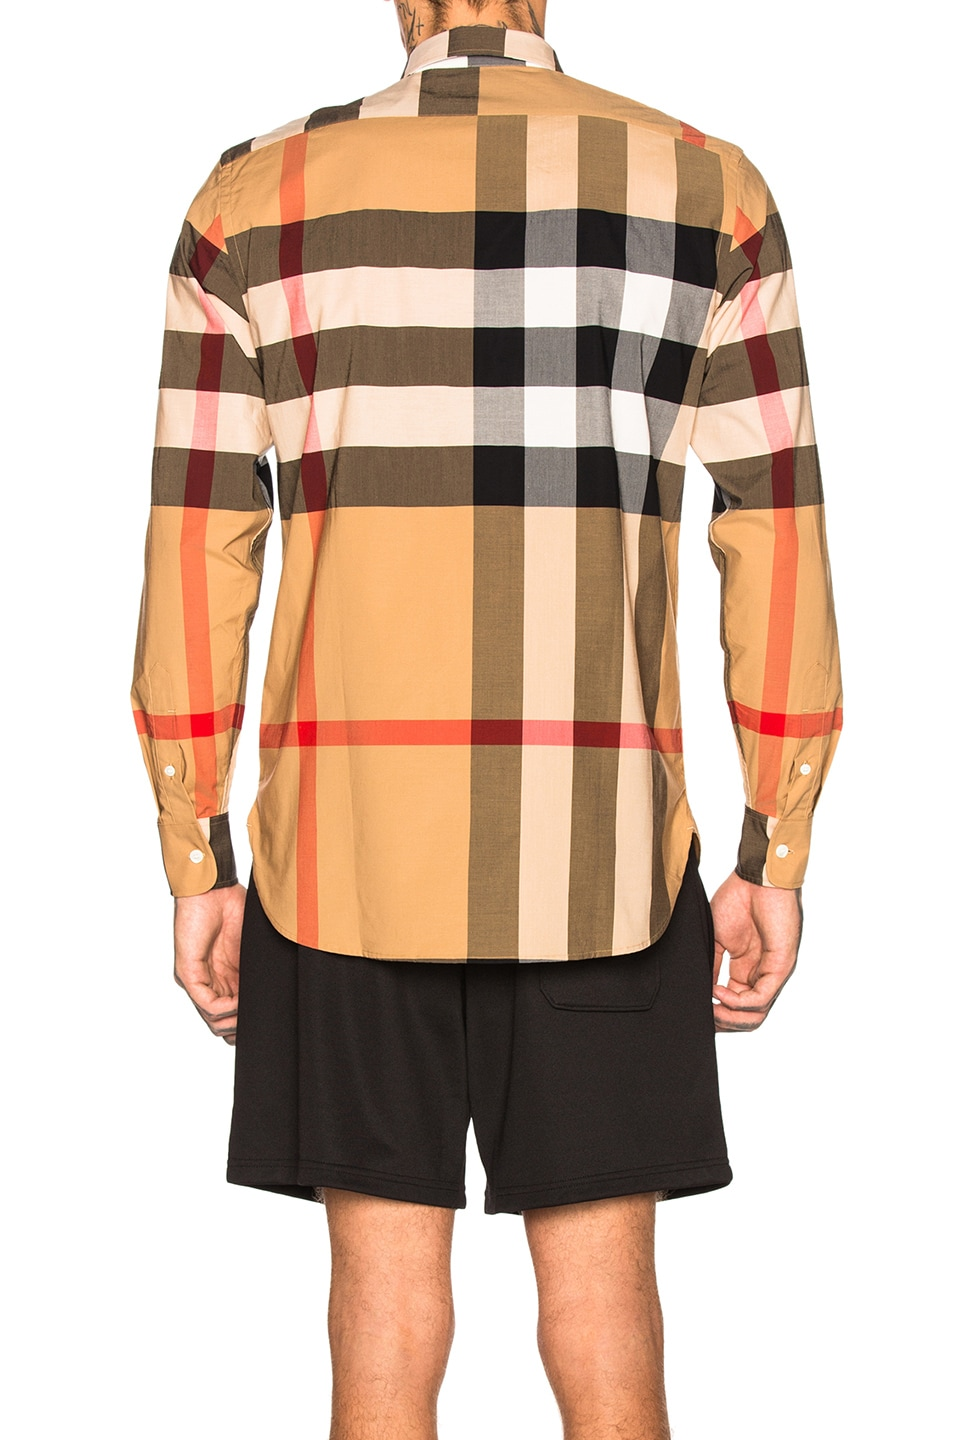 Image 3 of Burberry Giant Exploded Stretch Shirt in Camel Check